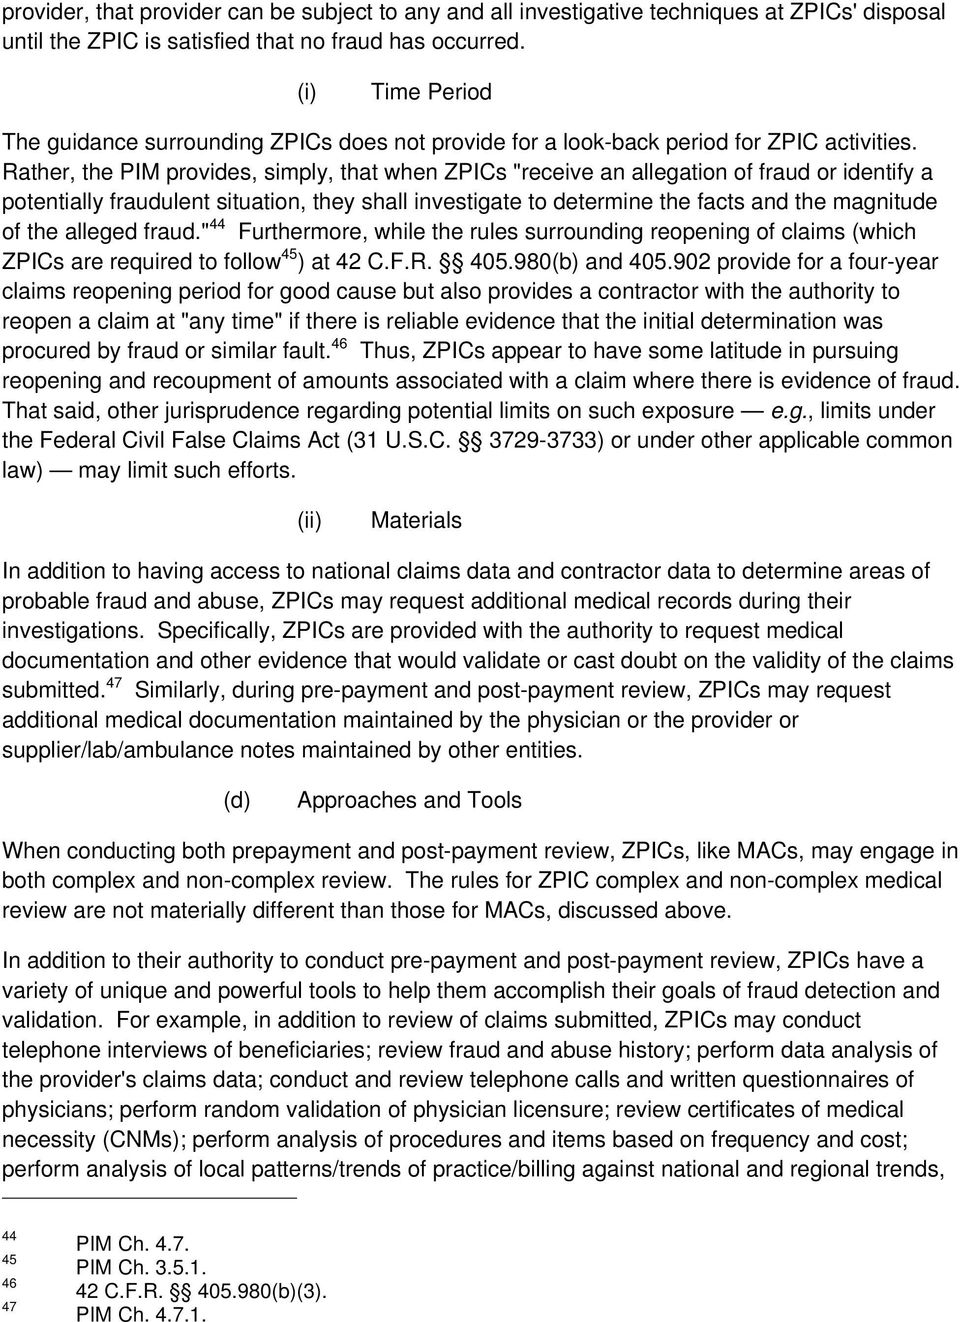 "Rather, the PIM provides, simply, that when ZPICs ""receive an allegation of fraud or identify a potentially fraudulent situation, they shall investigate to determine the facts and the magnitude of"